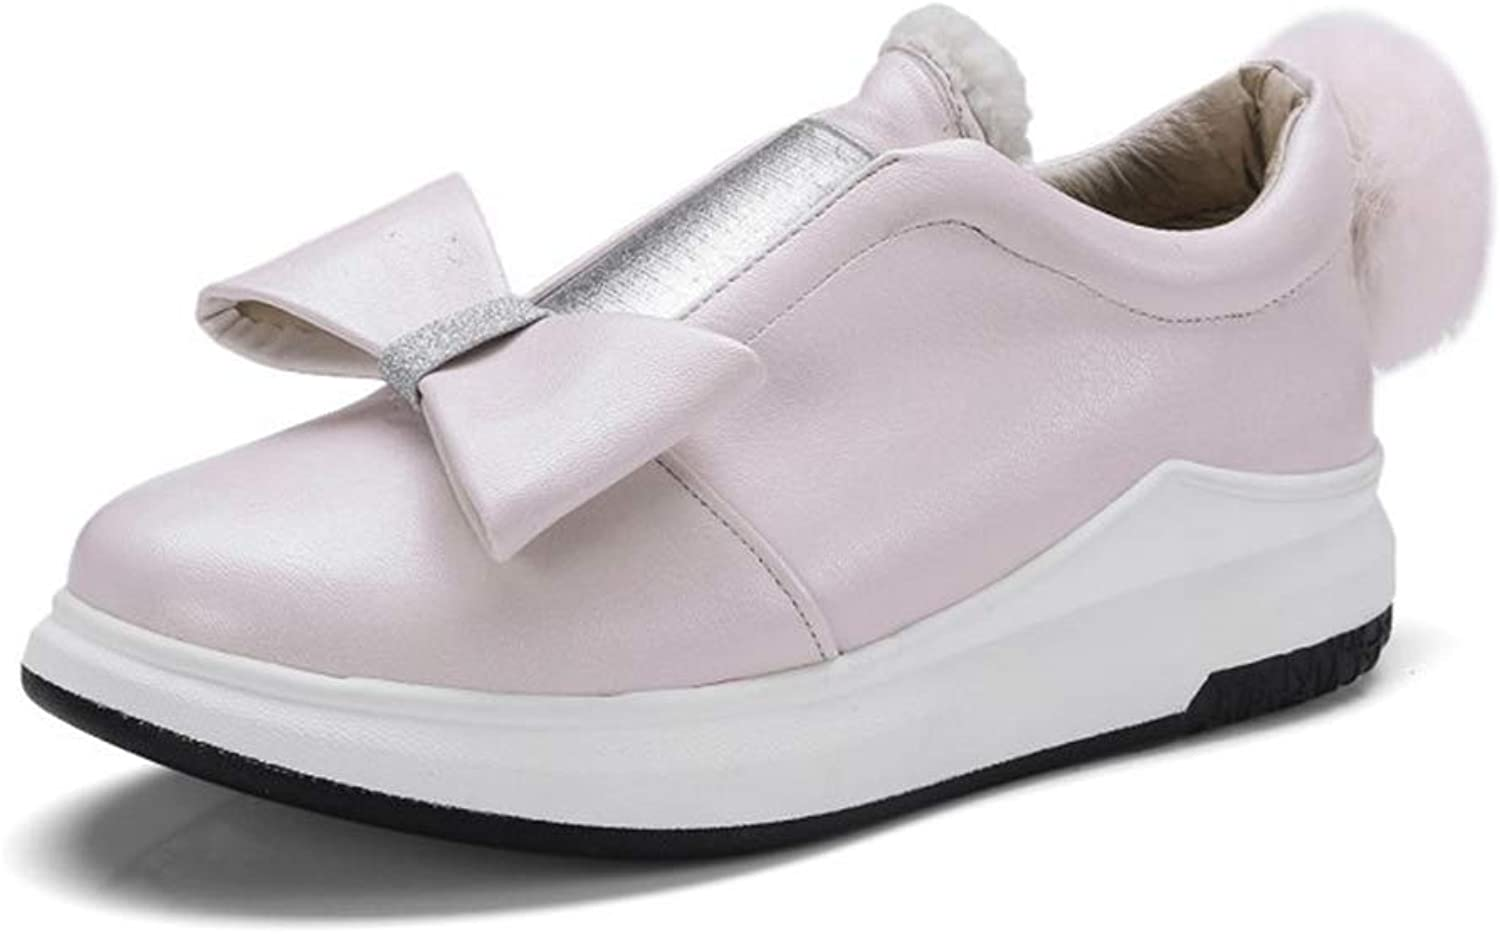 Btrada Women's Fashion Sneakers Casual Slip On Loafers Cute Bowknot Wedges Non-Slip Flats Walking shoes